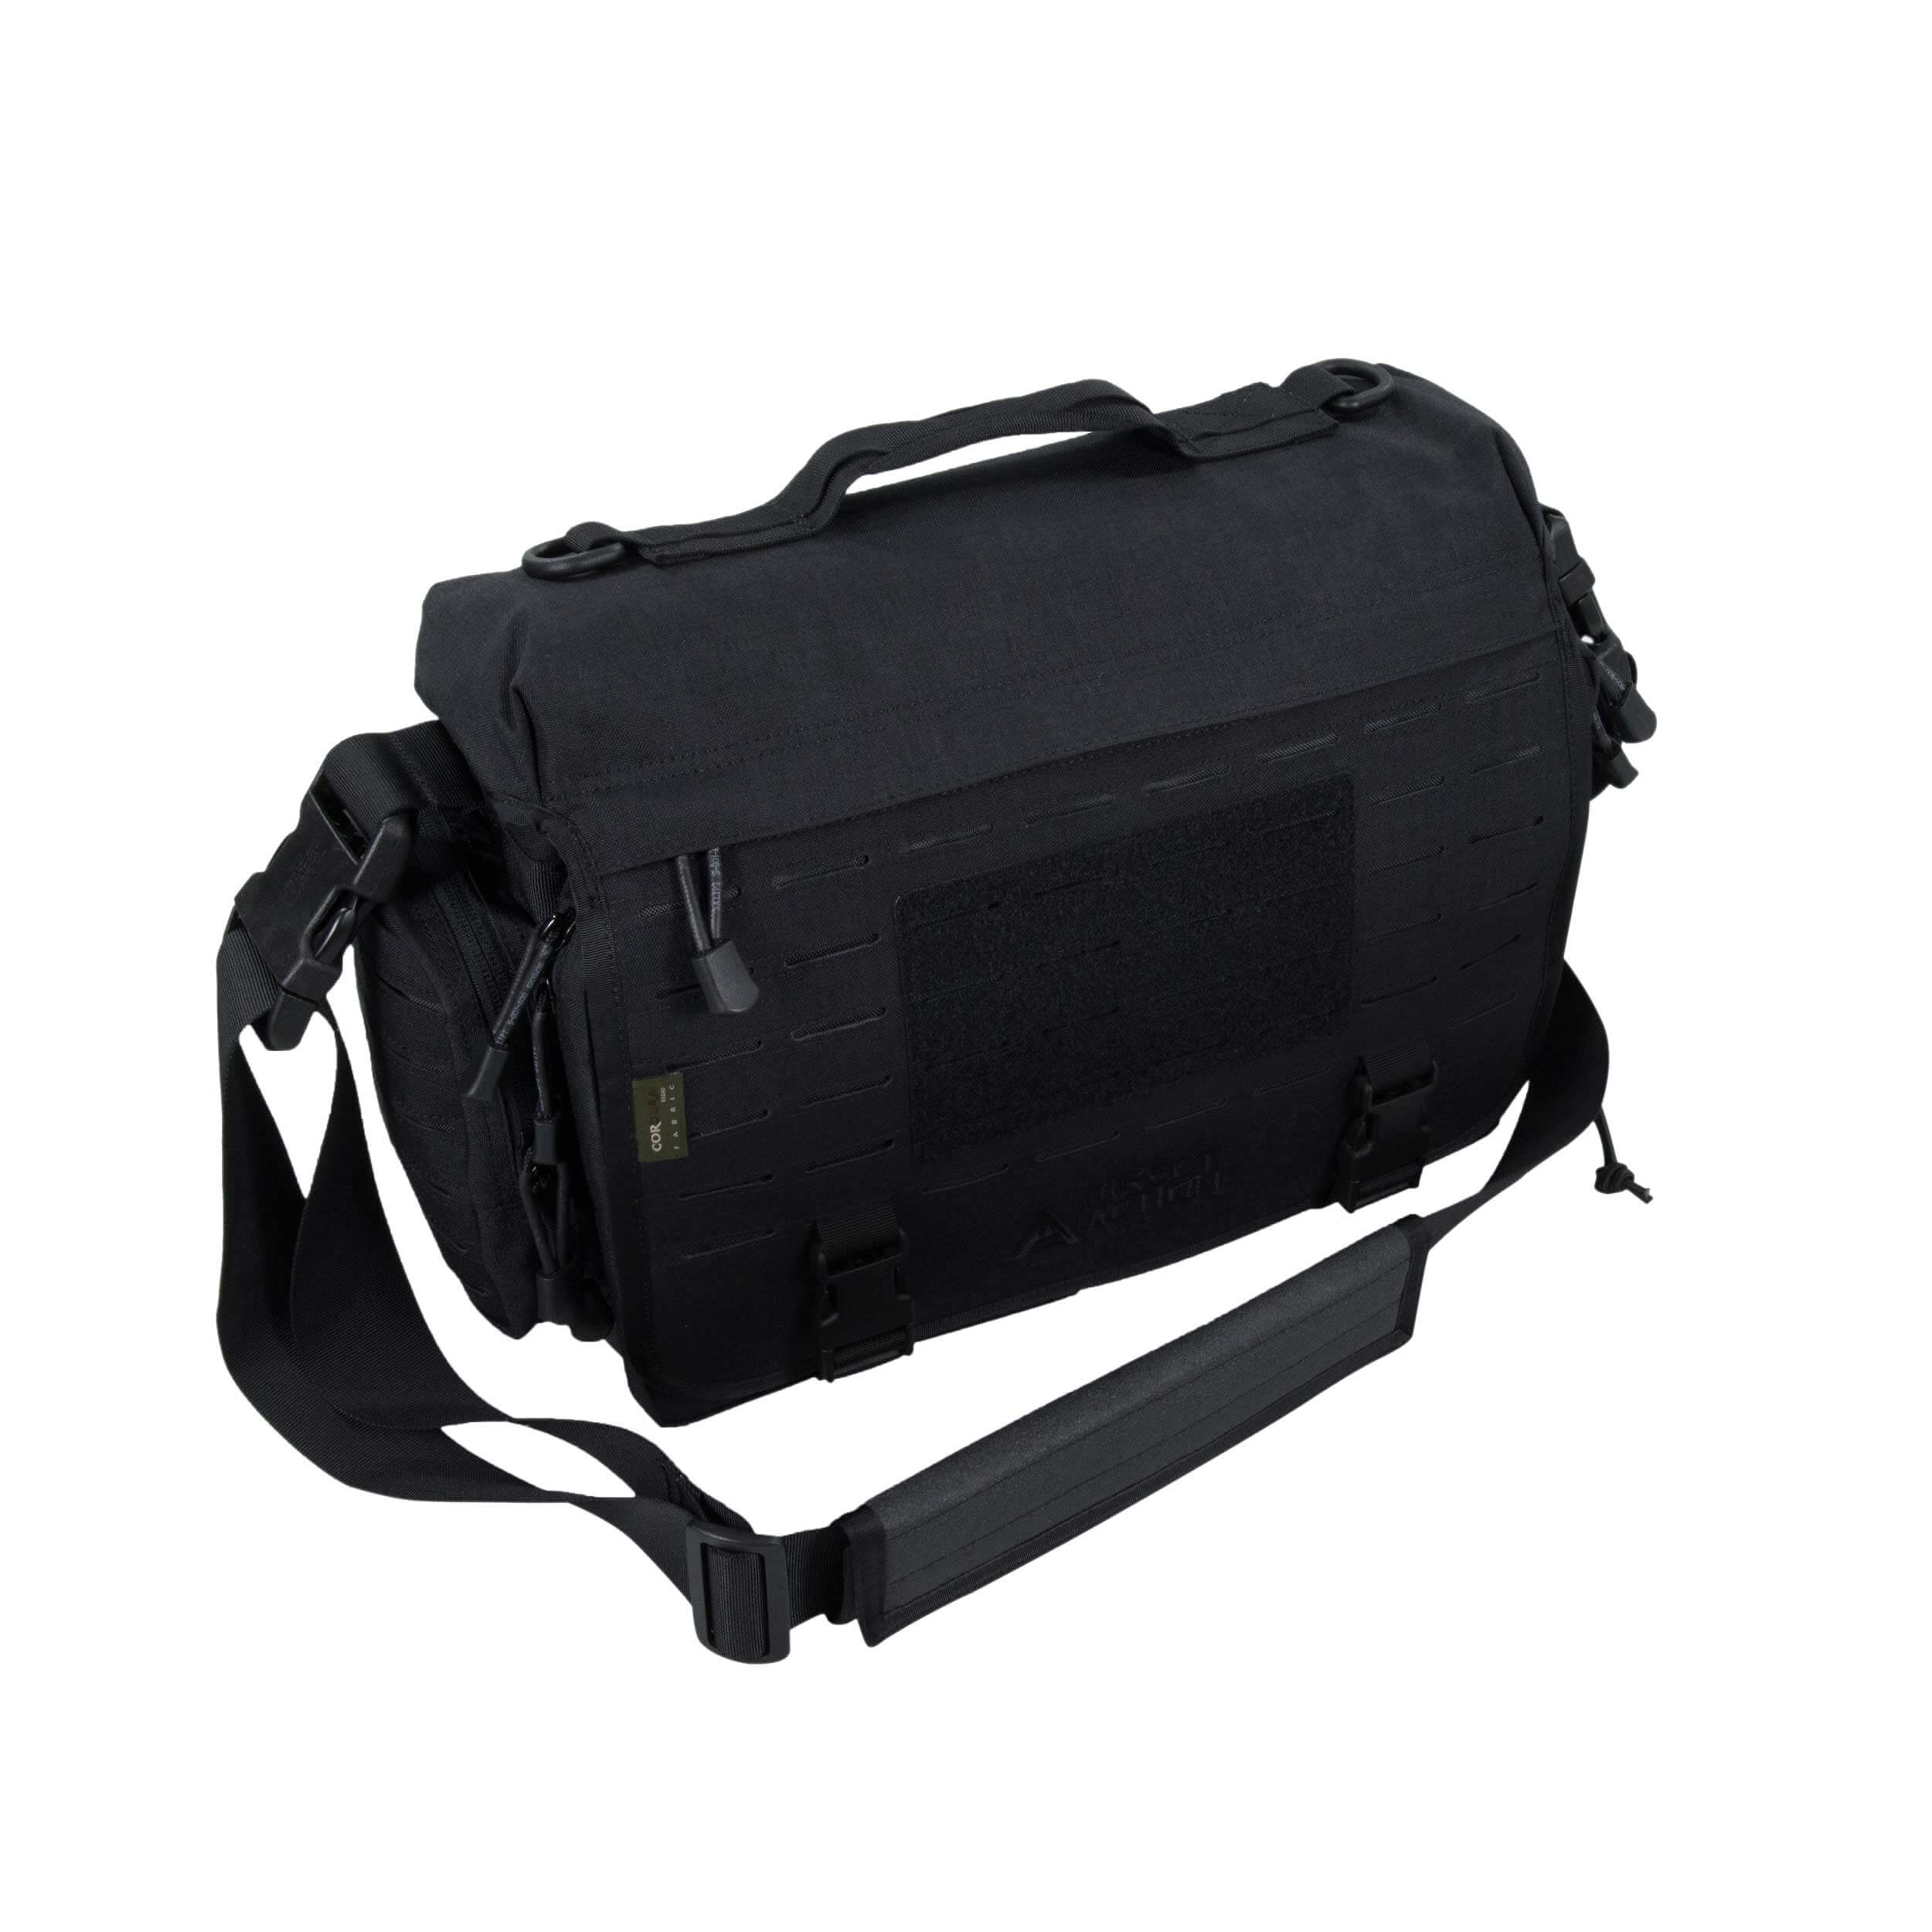 Direct Action MESSENGER BAG -Cordura- Schwarz